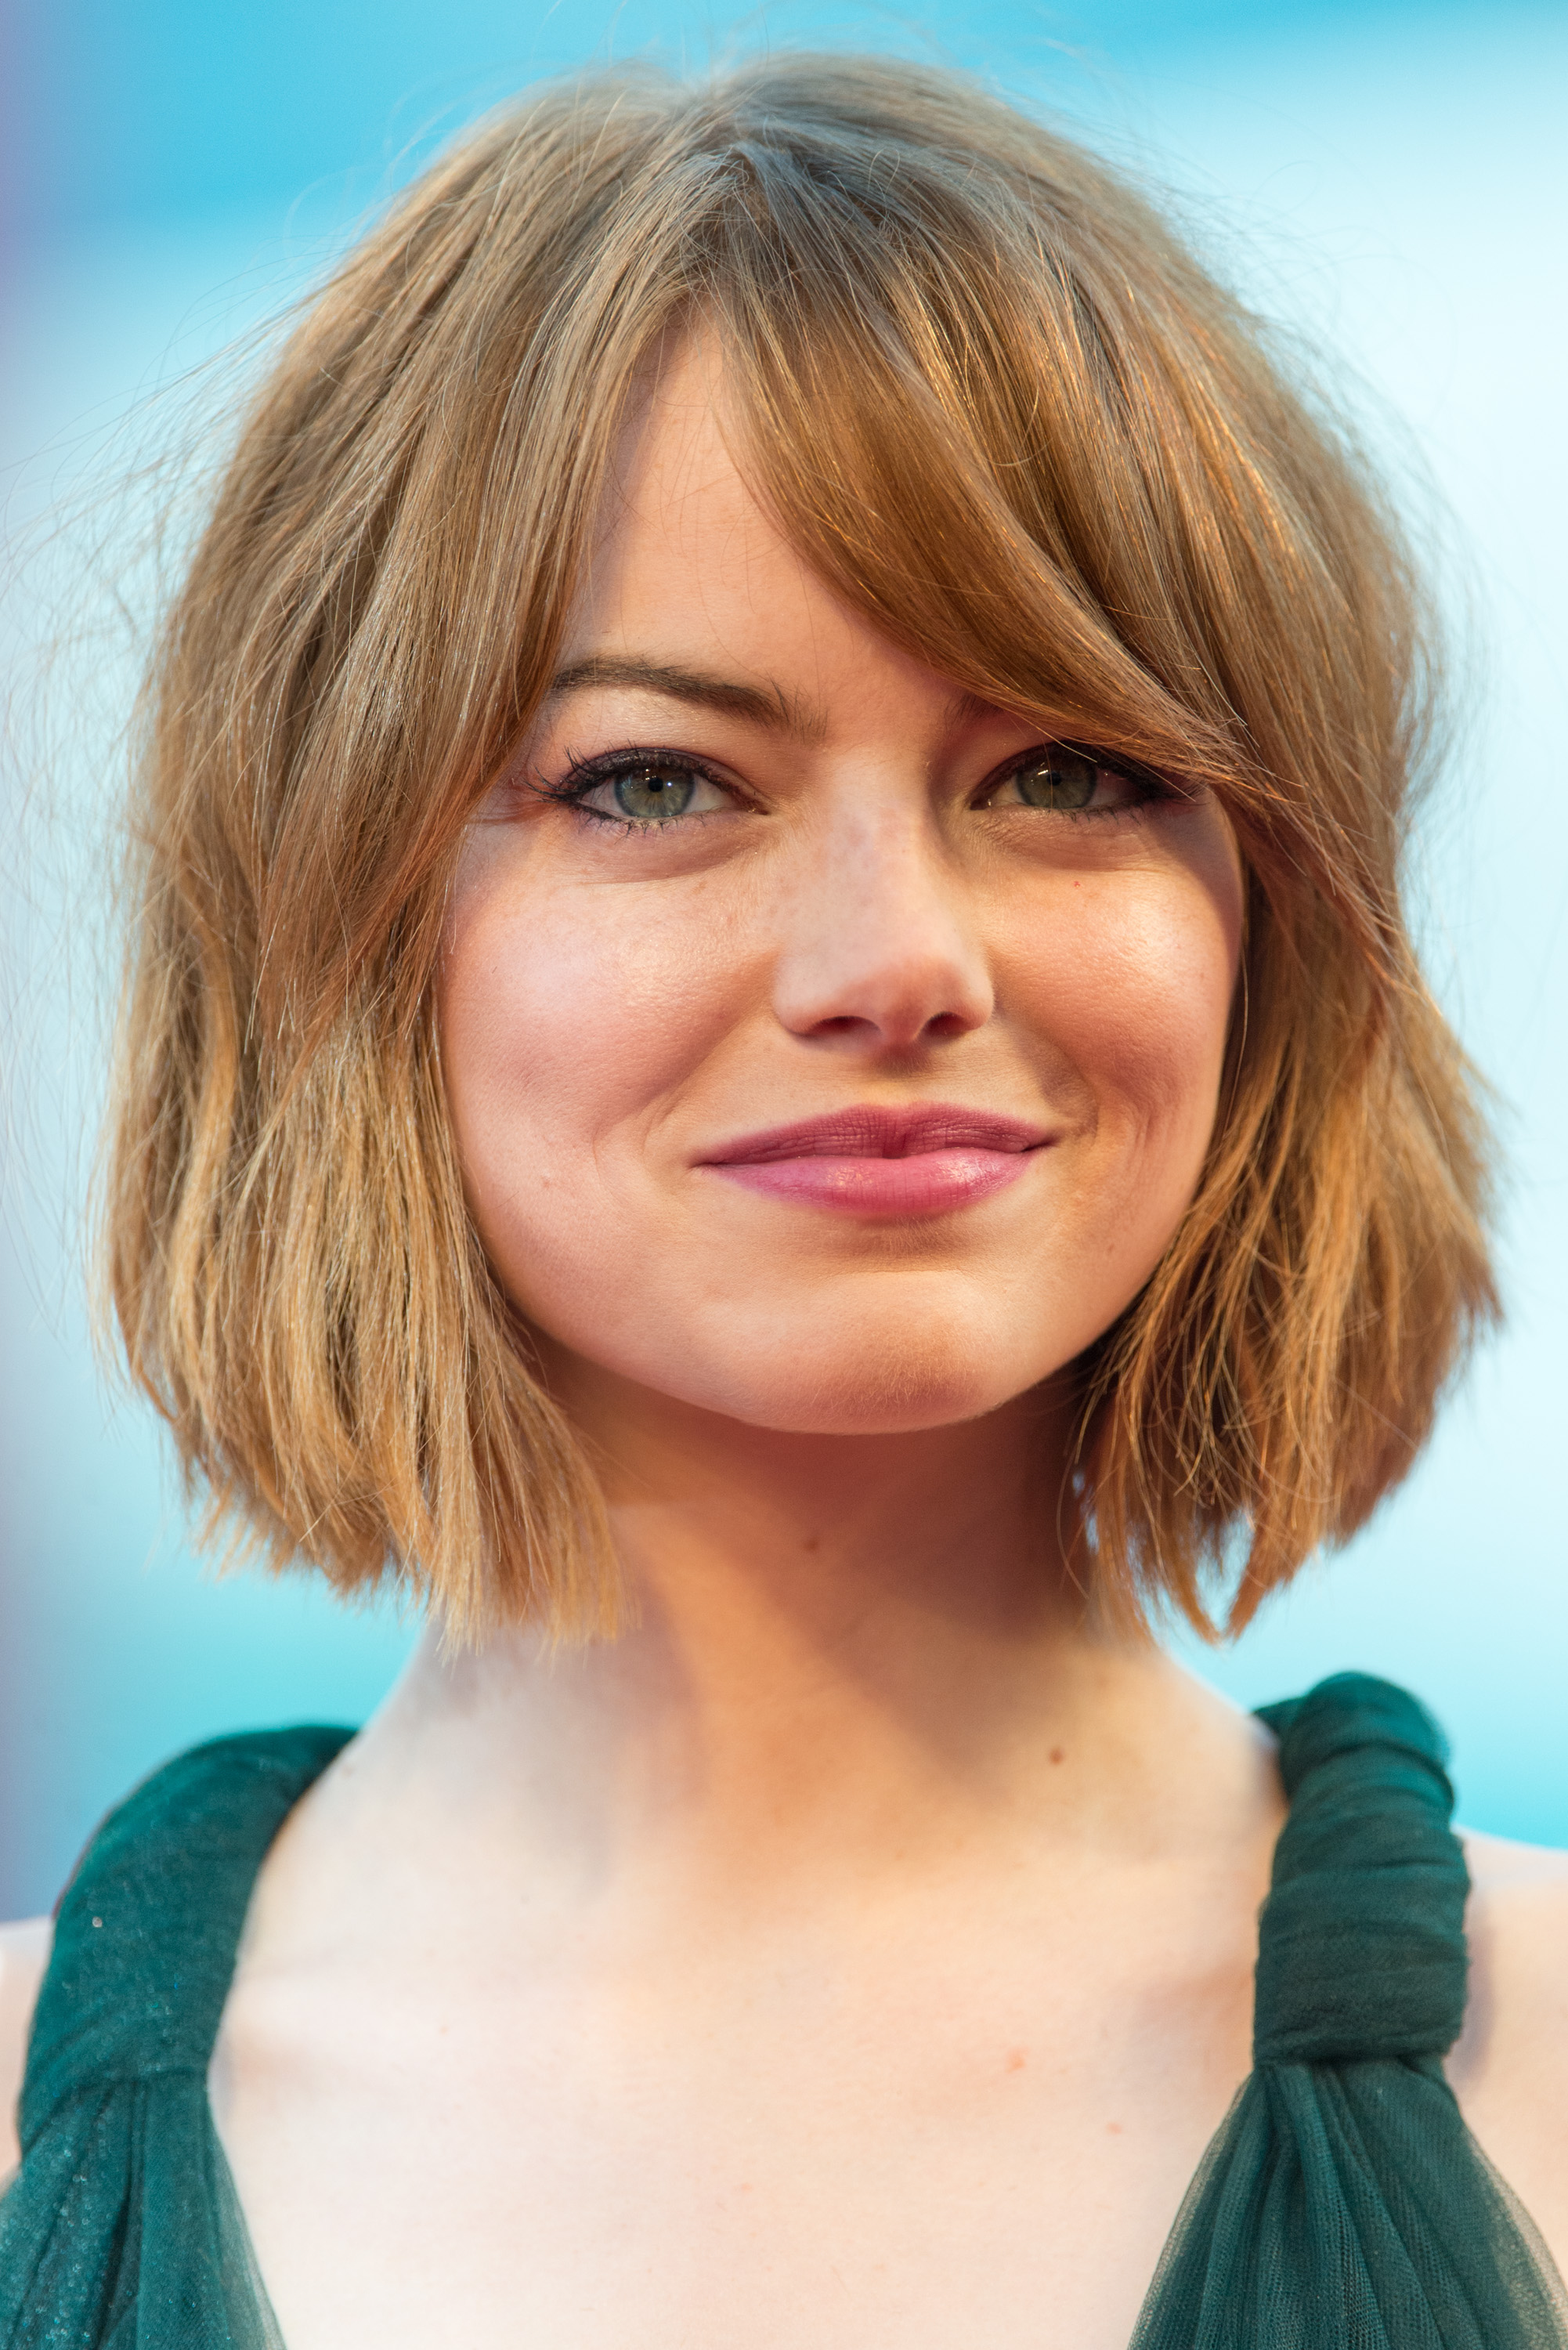 Emma Stone attends the Opening Ceremony and 'Birdman' premiere during the 71st Venice Film Festival on August 27, 2014 in Venice, Italy.